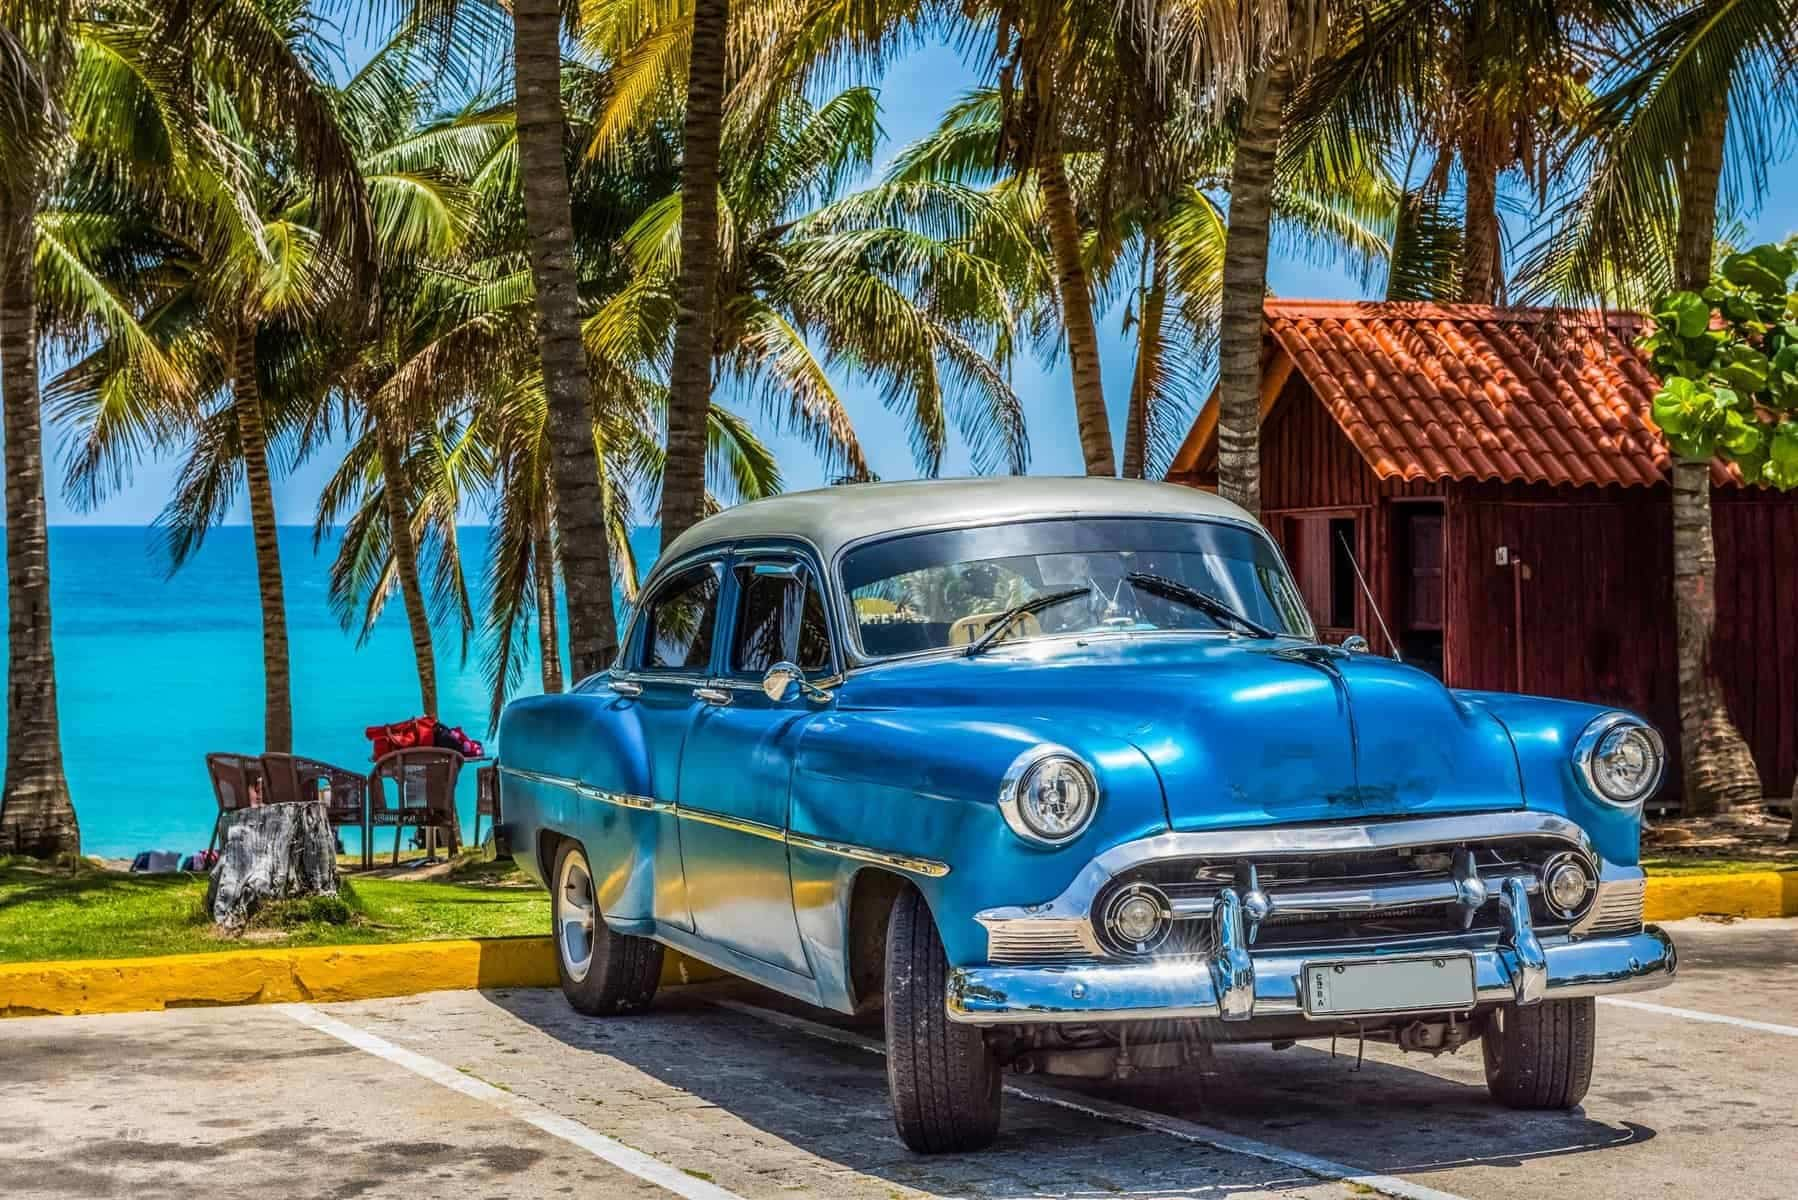 Billeje worldwide: American blue Chevrolet classic car with silver roof parked on the beach in Varadero Cuba